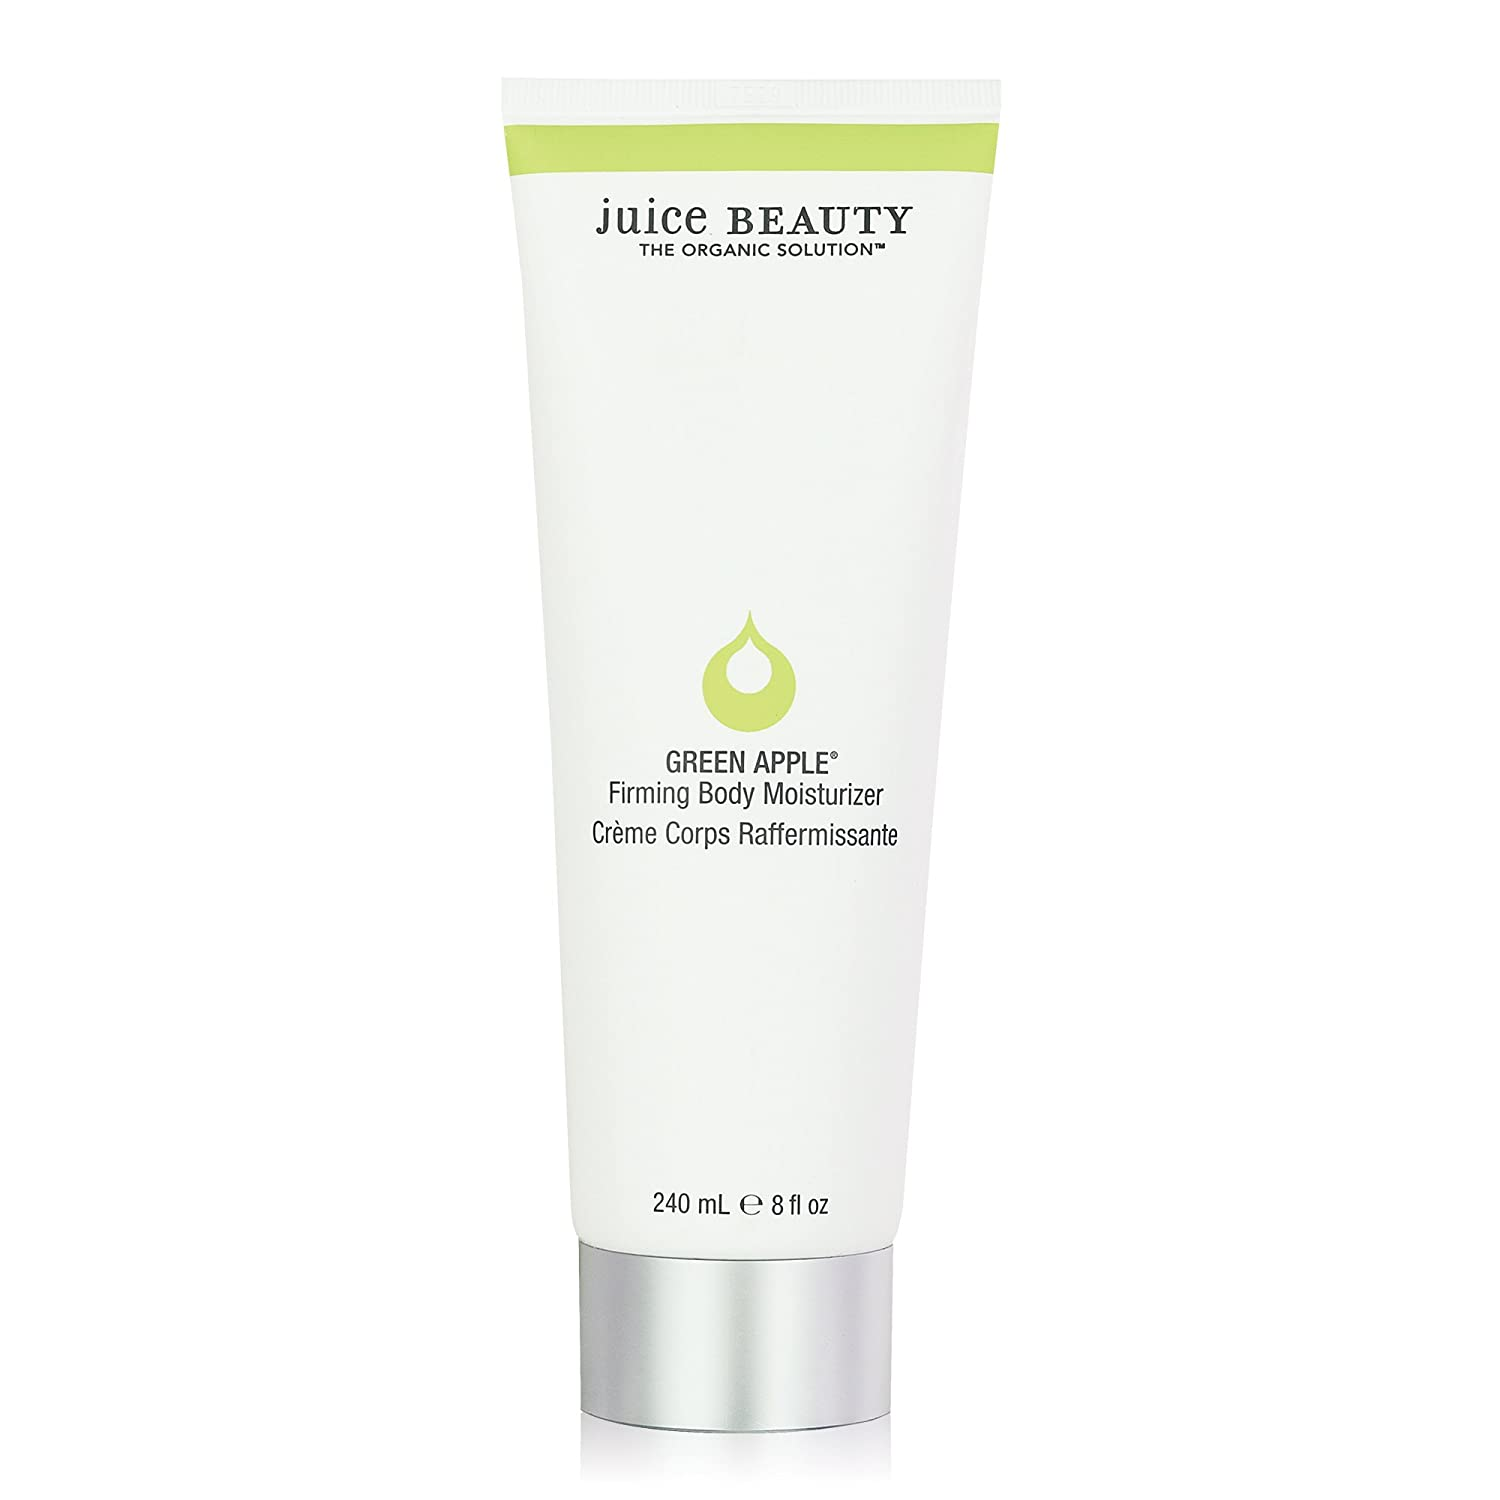 Juice Beauty Green Apple Firming Body Moisturizer, 8 fl. oz